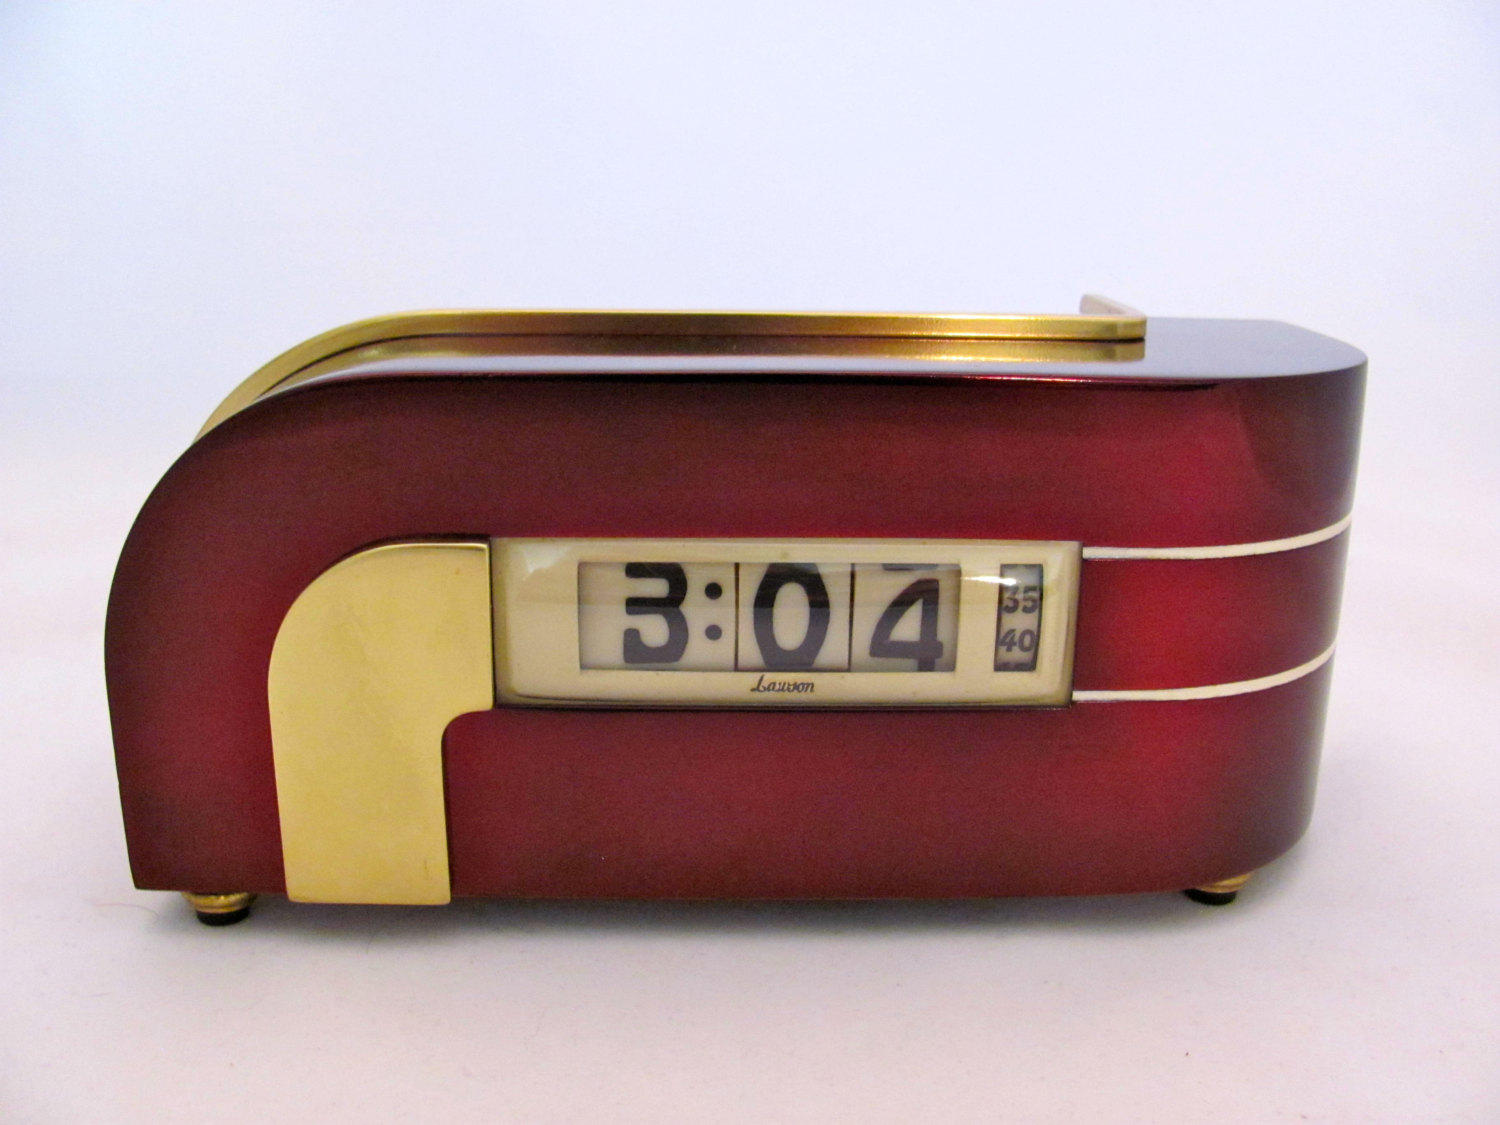 Big Flip Clock Introducing The Cyclometers The 39other 39 Flip Clocks